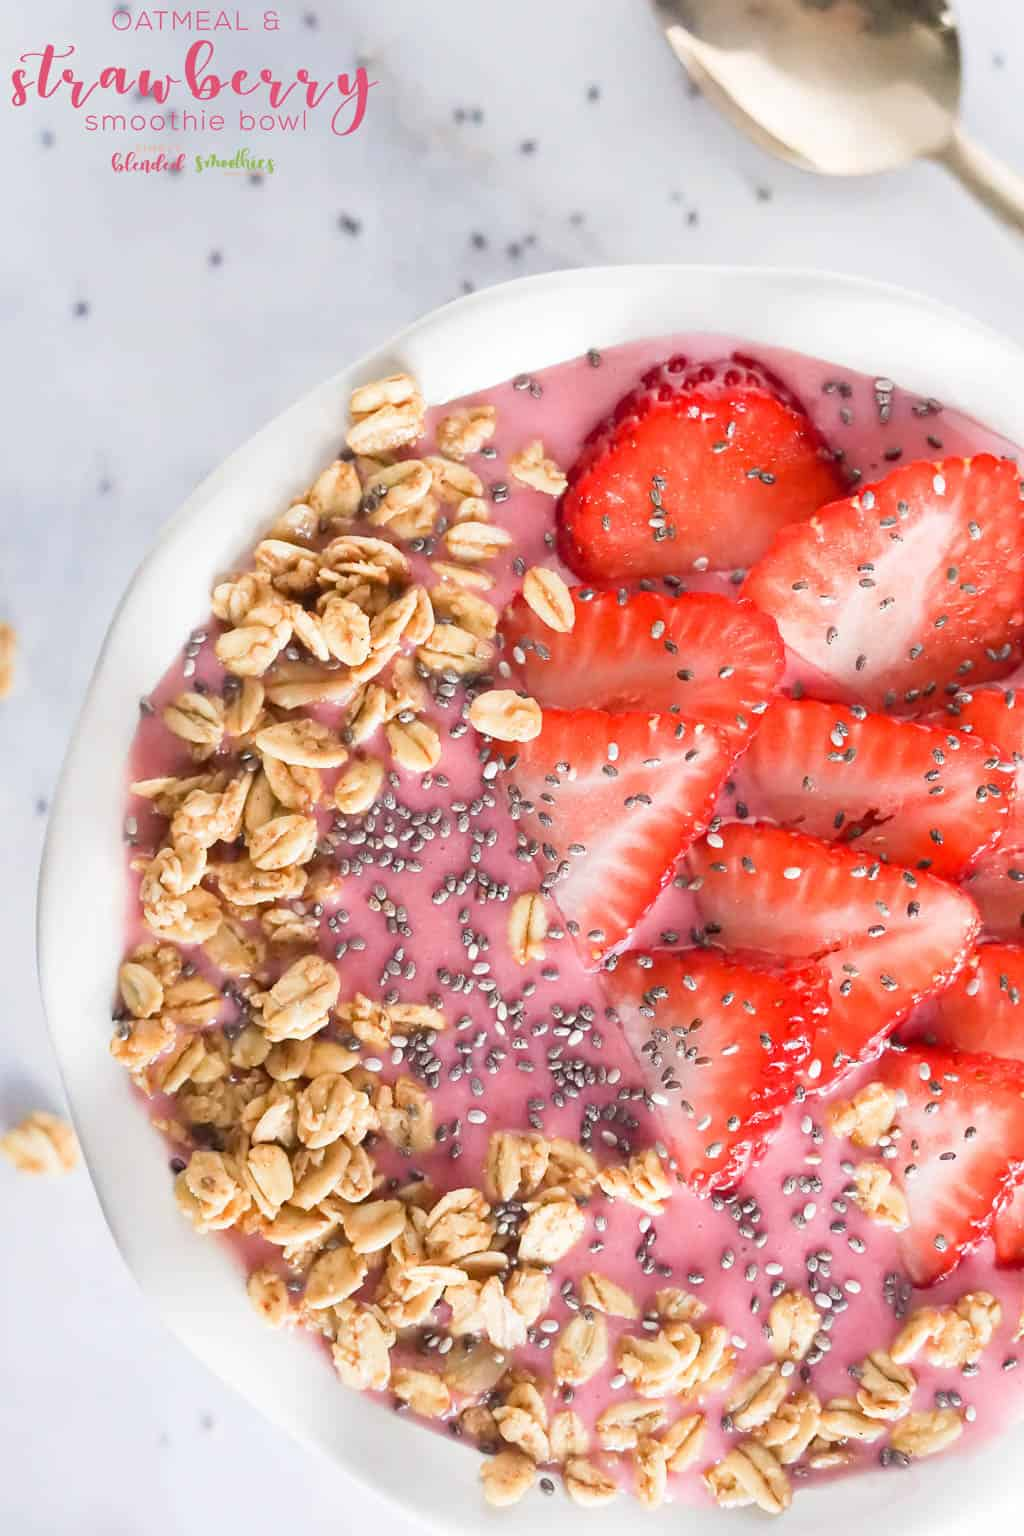 Strawberry Oatmeal Smoothie Bowl - a delicious strawberry smoothie bowl that will fill you up and keep your belly full all morning